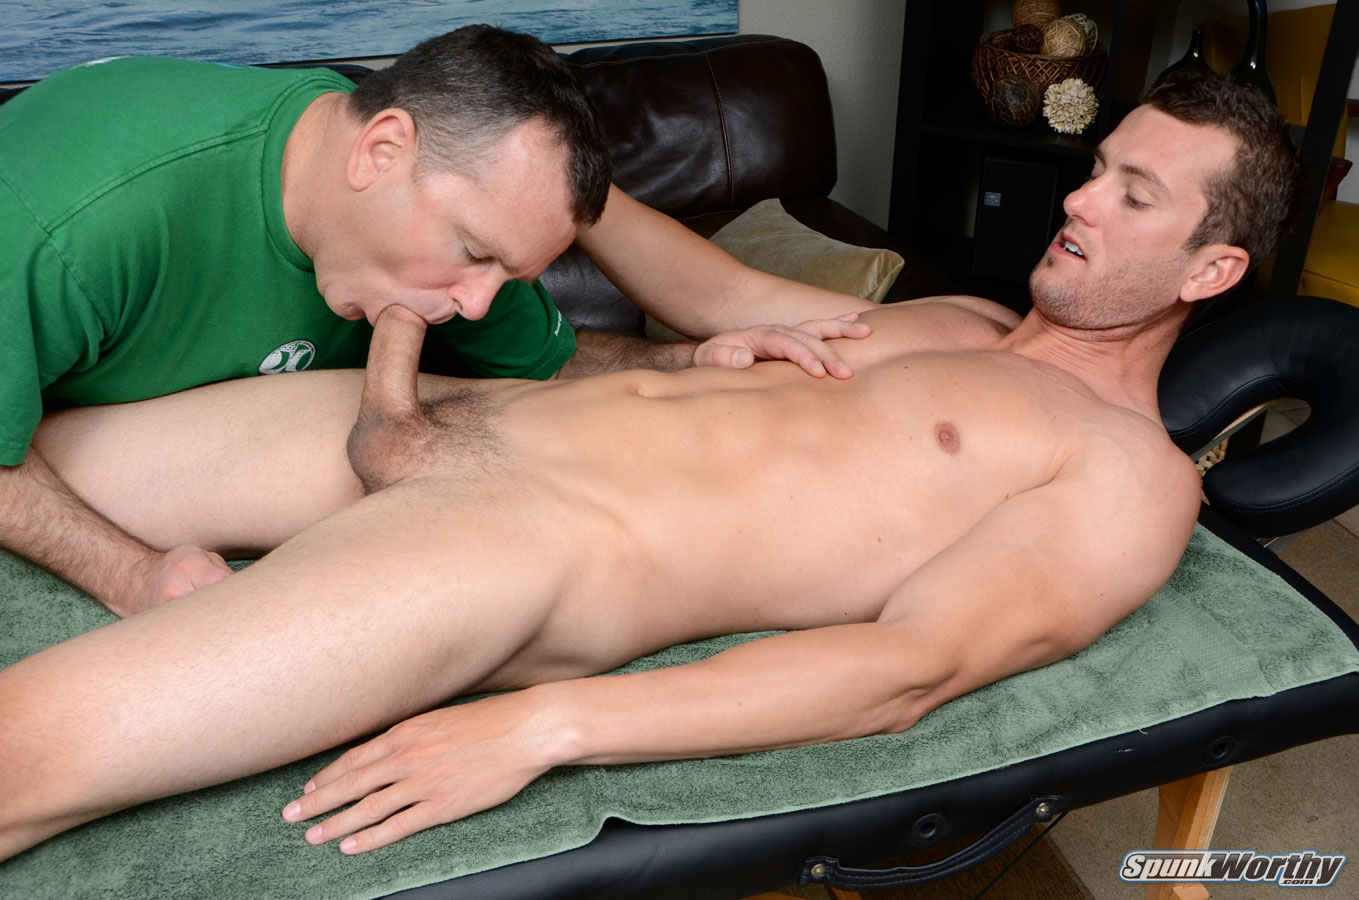 SpunkWorthy-Tommy-Straight-Guys-First-Blow-Job-From-A-Gay-Guy-Massage-Amateur-Gay-Porn-16 Amateur Straight Guy Gets His First Massage With A Happy Ending